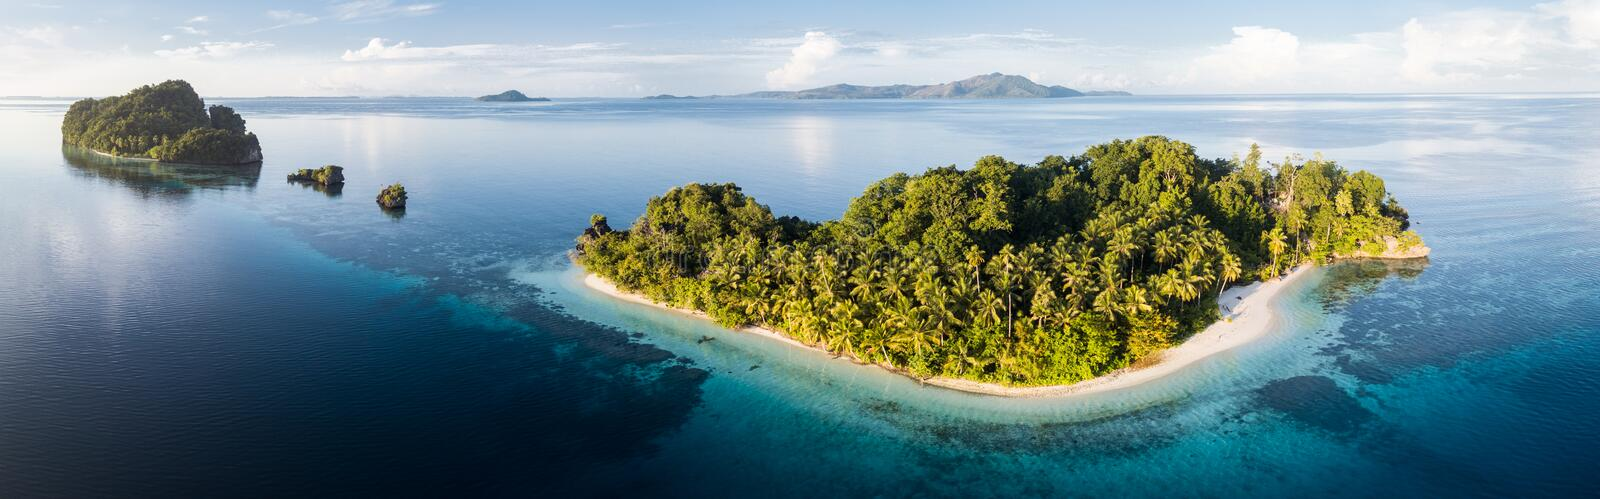 Aerial Panorama of Idyllic, Tropical Islands in Raja Ampat. The islands found throughout Raja Ampat, Indonesia, are surrounded by flourishing coral reefs and stock photography